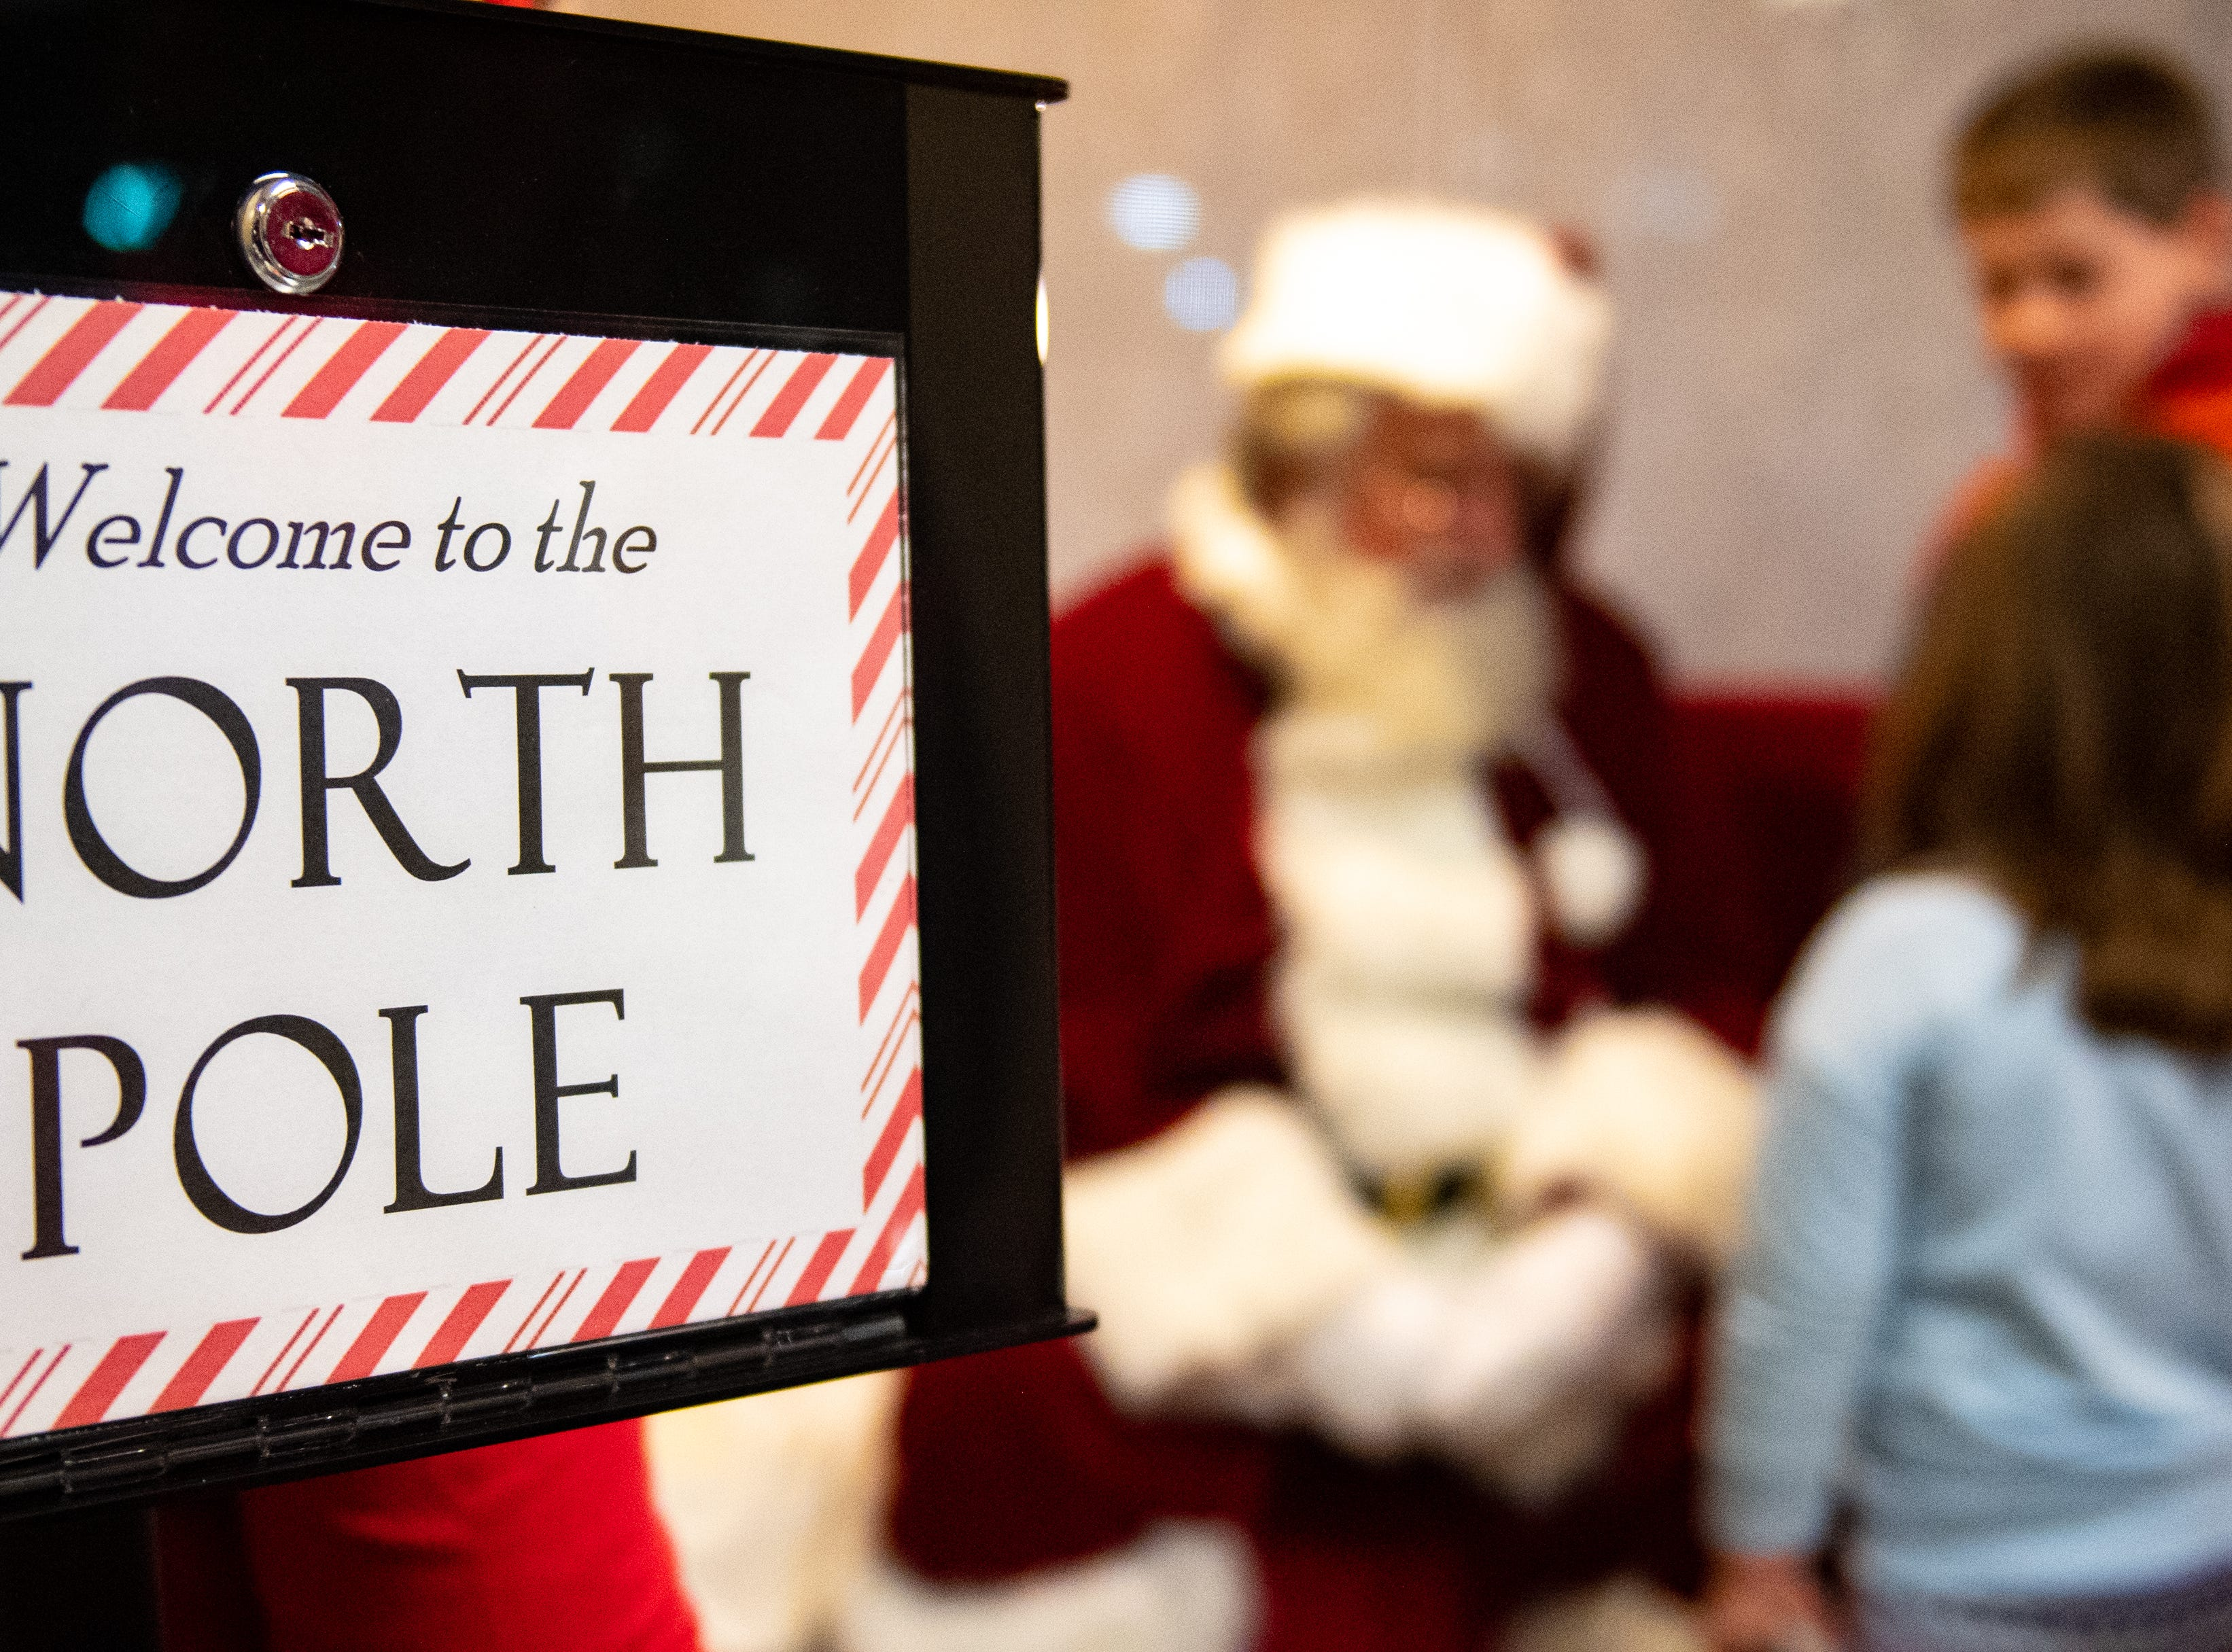 On Wednesday, Chick-fil-A in Springettsbury Township partnered with Easterseals Western and Central Pennsylvania - York Division to put on the first Dinner with Santa and Santa Cow event.